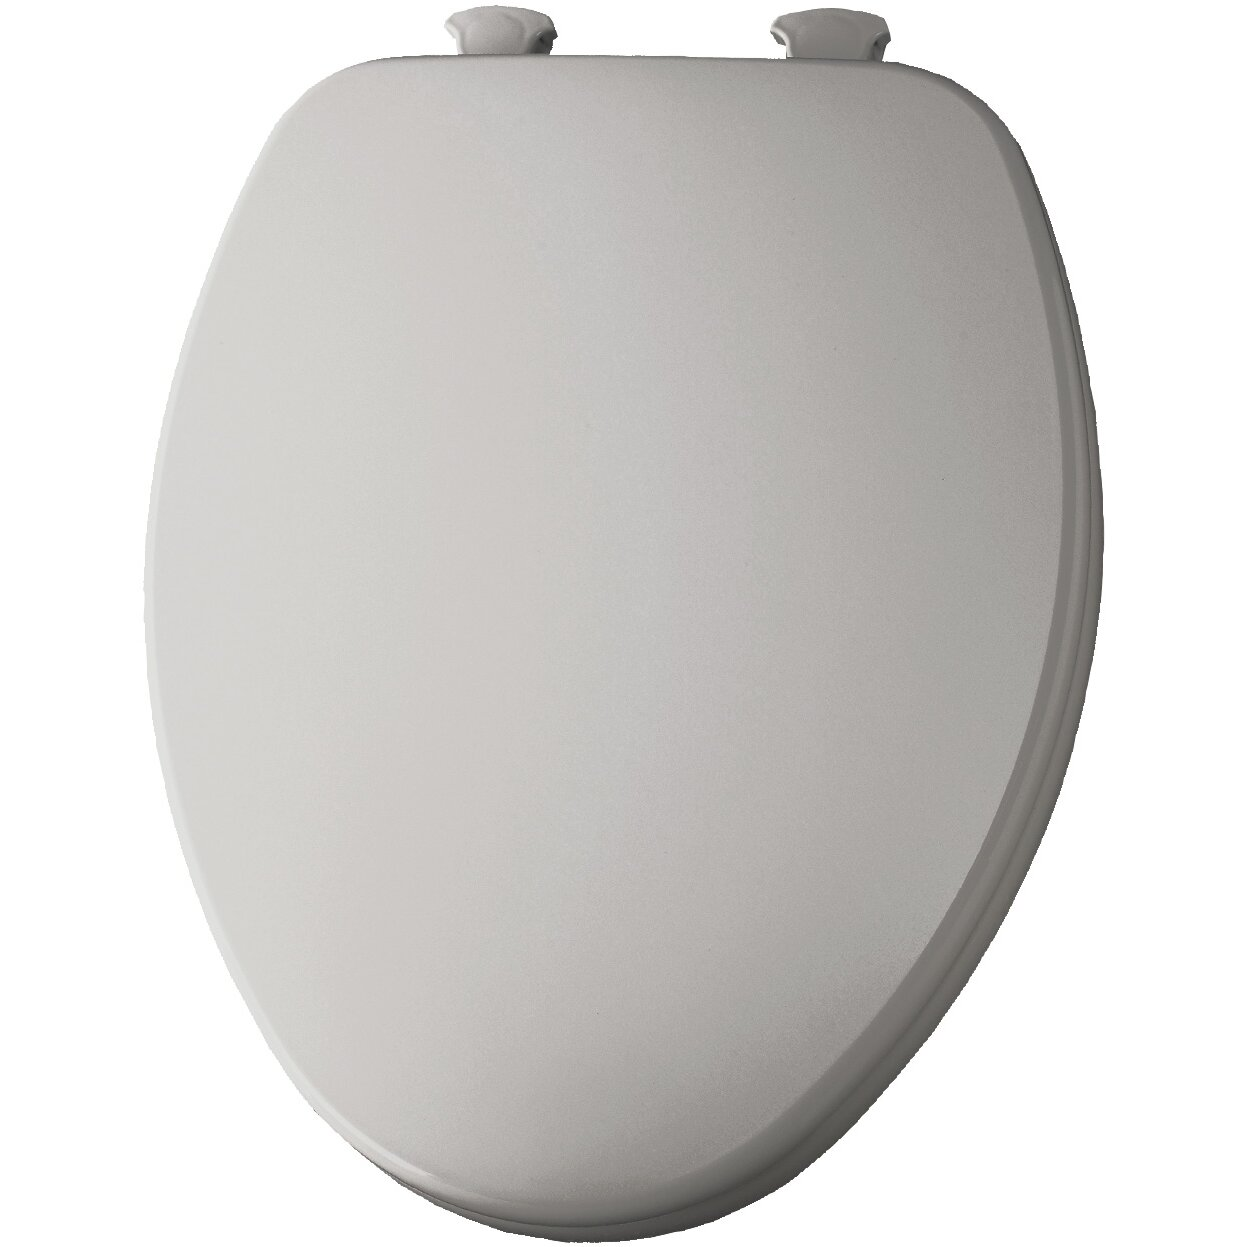 Bemis Closed Front Elongated Toilet Seat Amp Reviews Wayfair